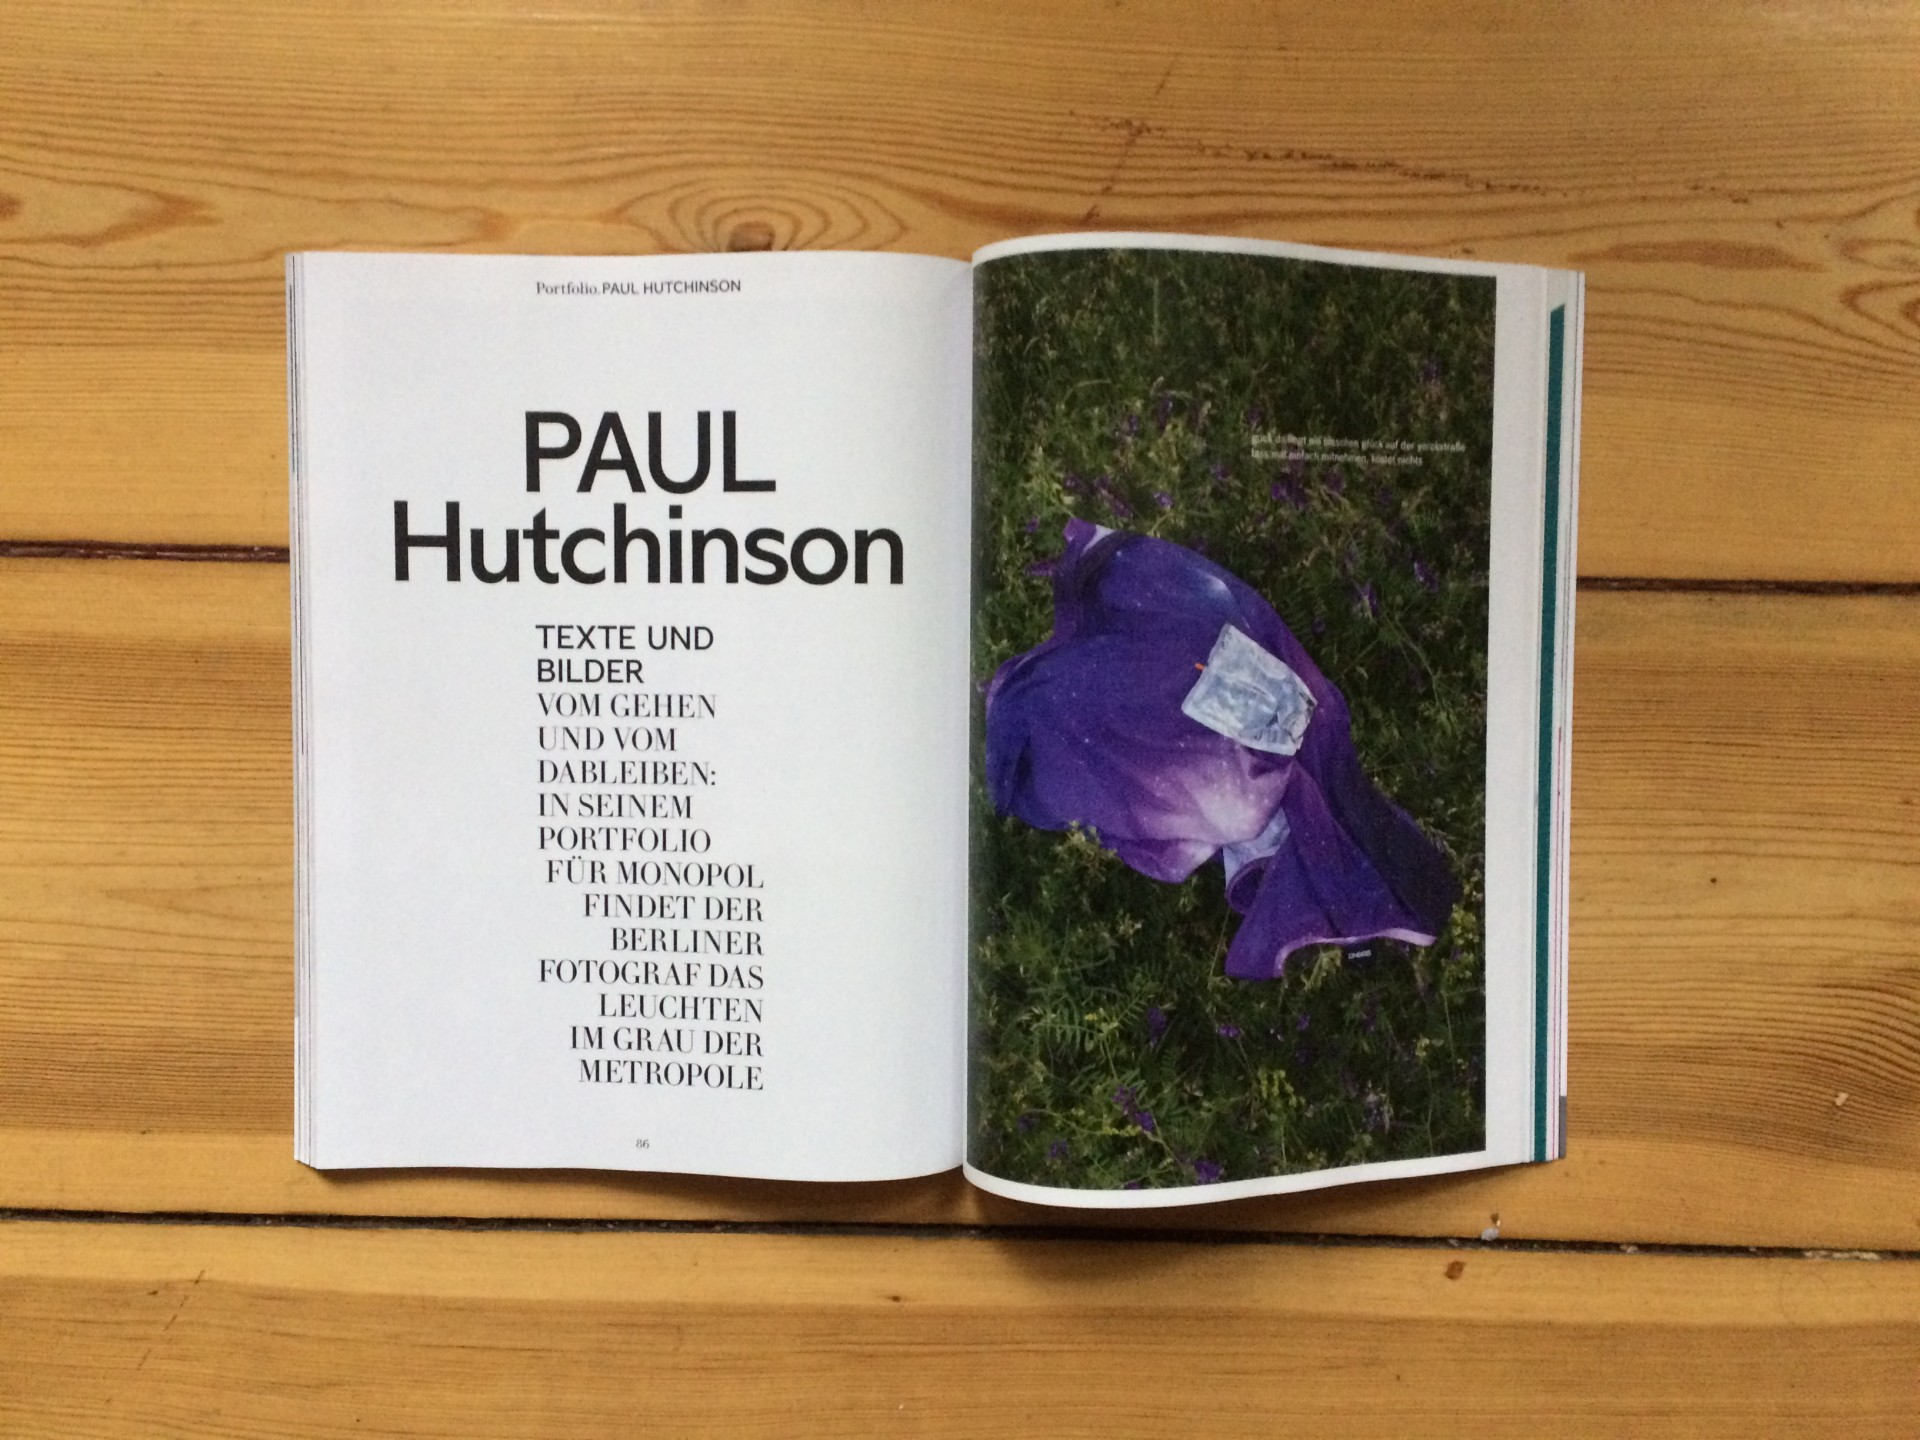 Paul Hutchinson activities